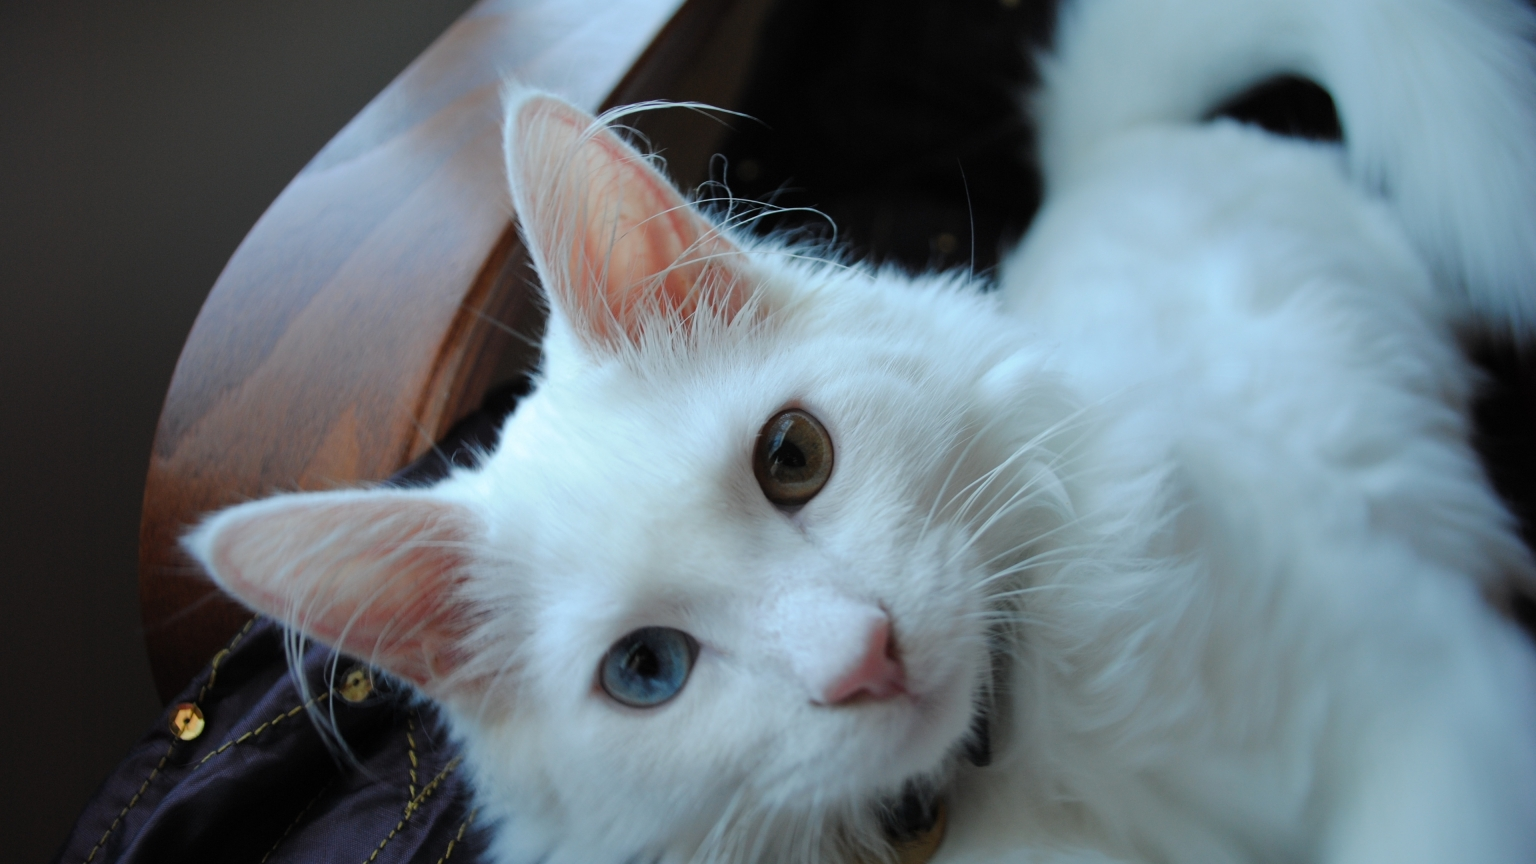 White Turkish Agora Cat with Odd Eyes for 1536 x 864 HDTV resolution